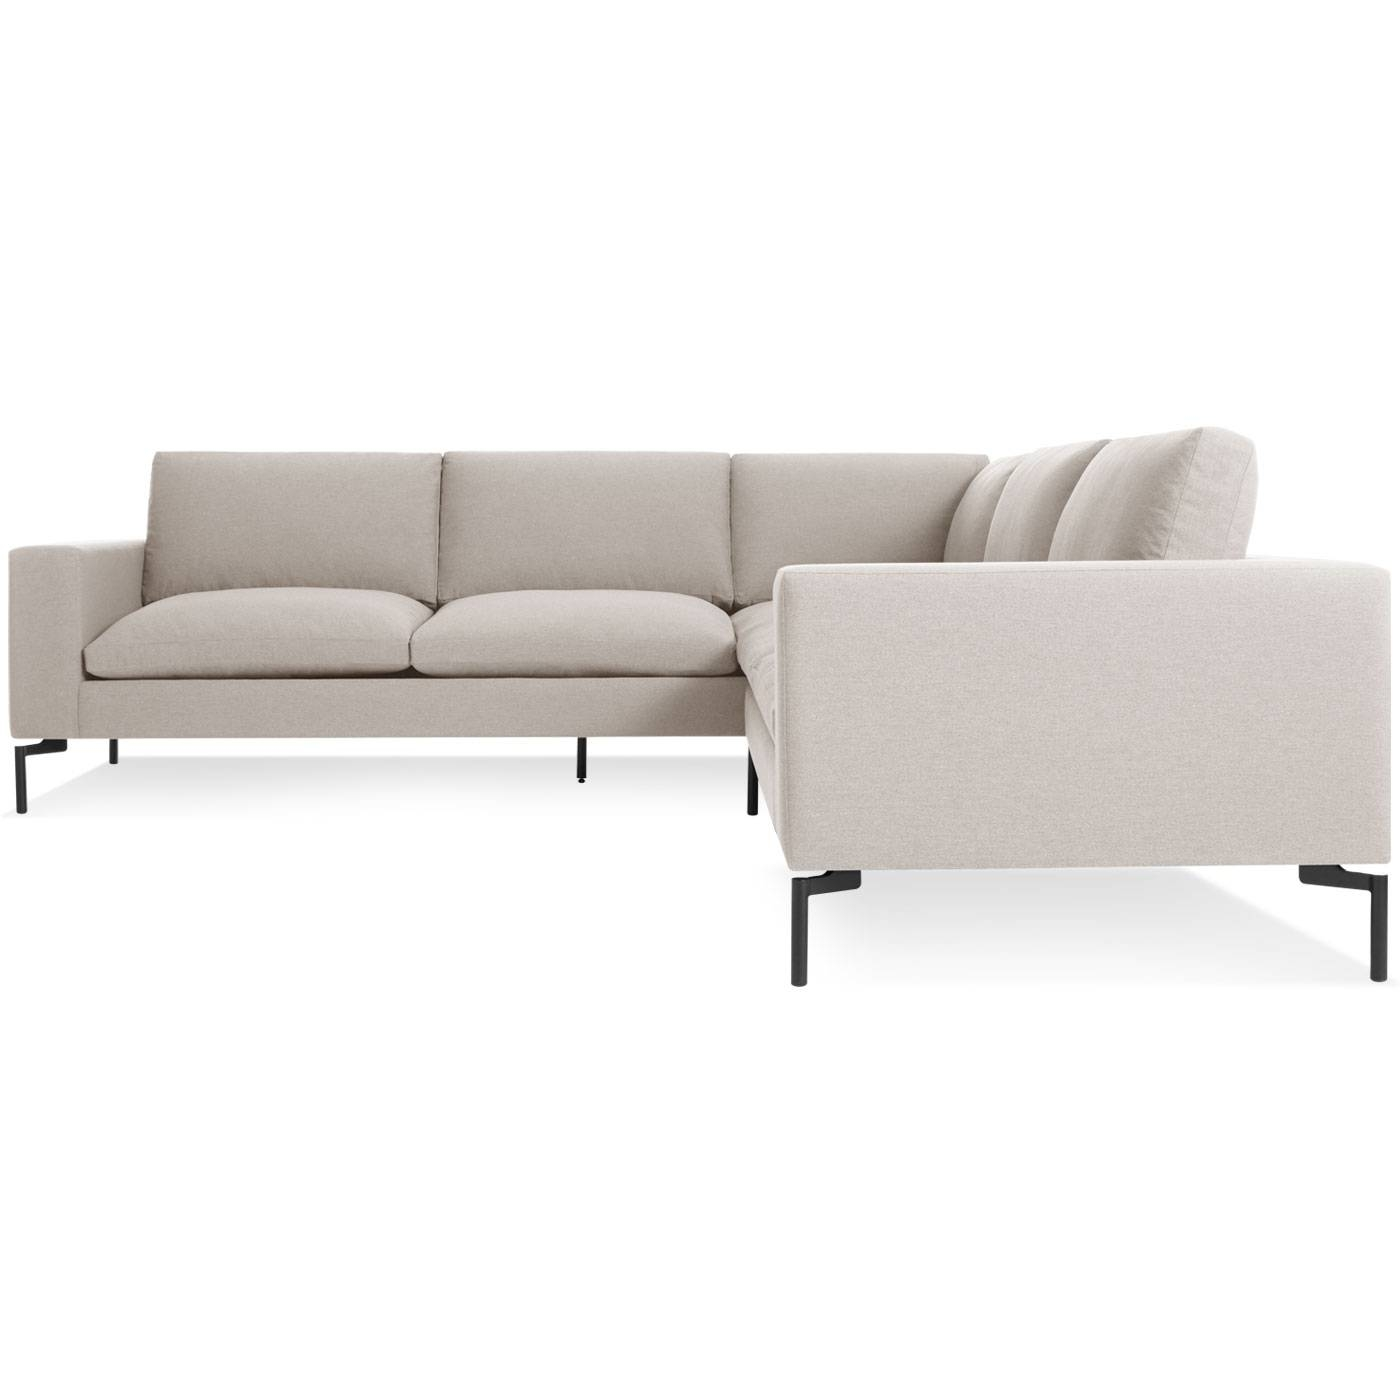 New Standard Small Sectional Sofa – Modern Sofas And Sectionals For Small Modern Sofas (View 9 of 15)